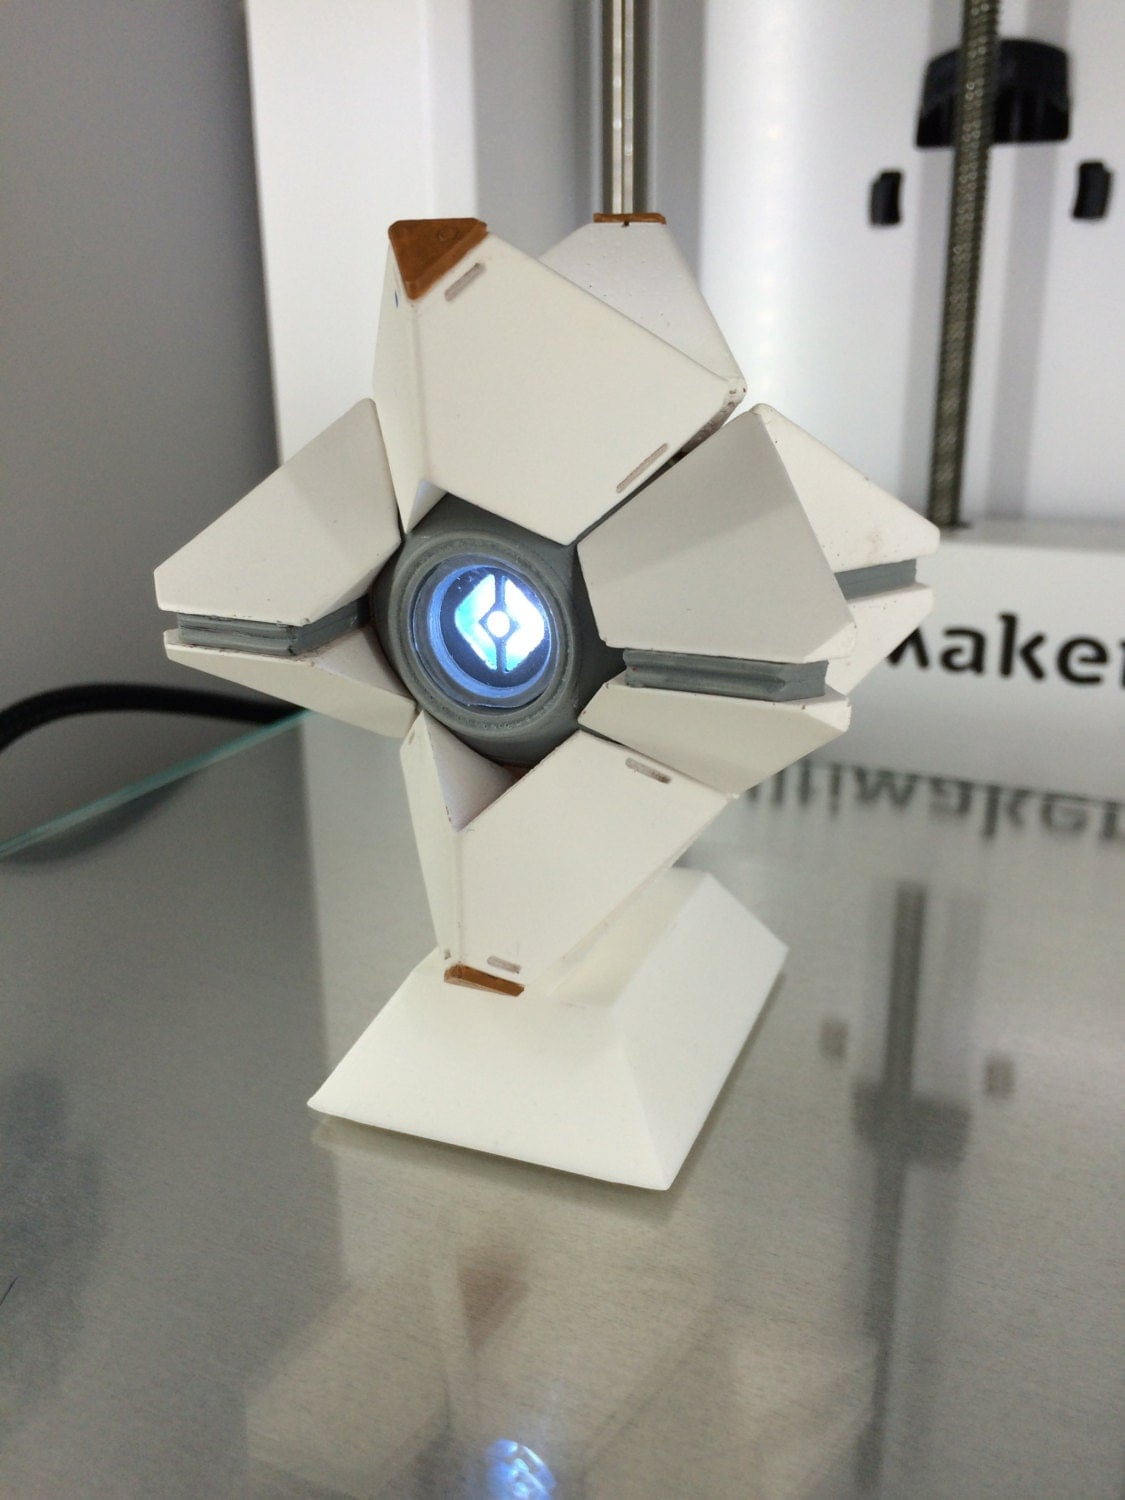 Destiny ghost generalist shell. Small Modular toy and led eye.